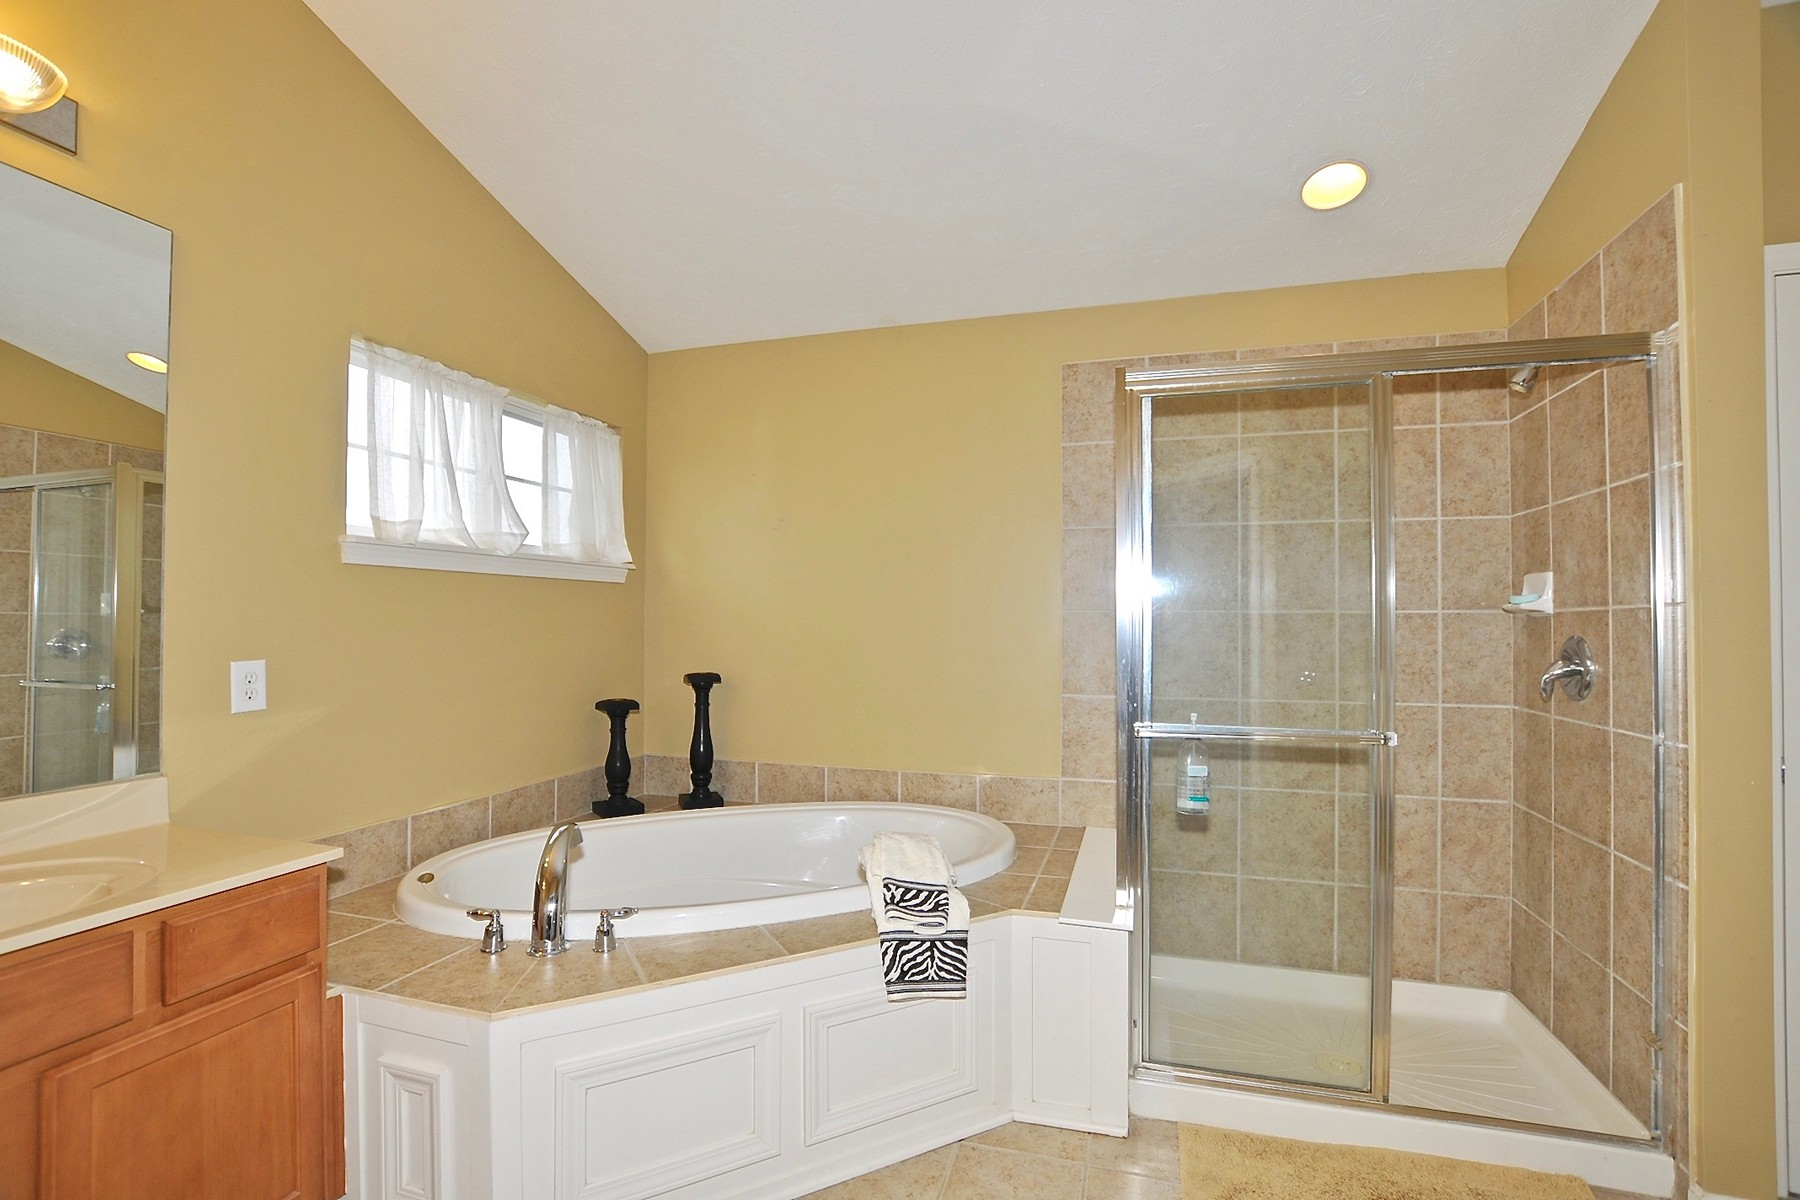 Additional photo for property listing at Phenomenal Home! 11644 Suncatcher Drive Fishers, Indiana 46037 United States